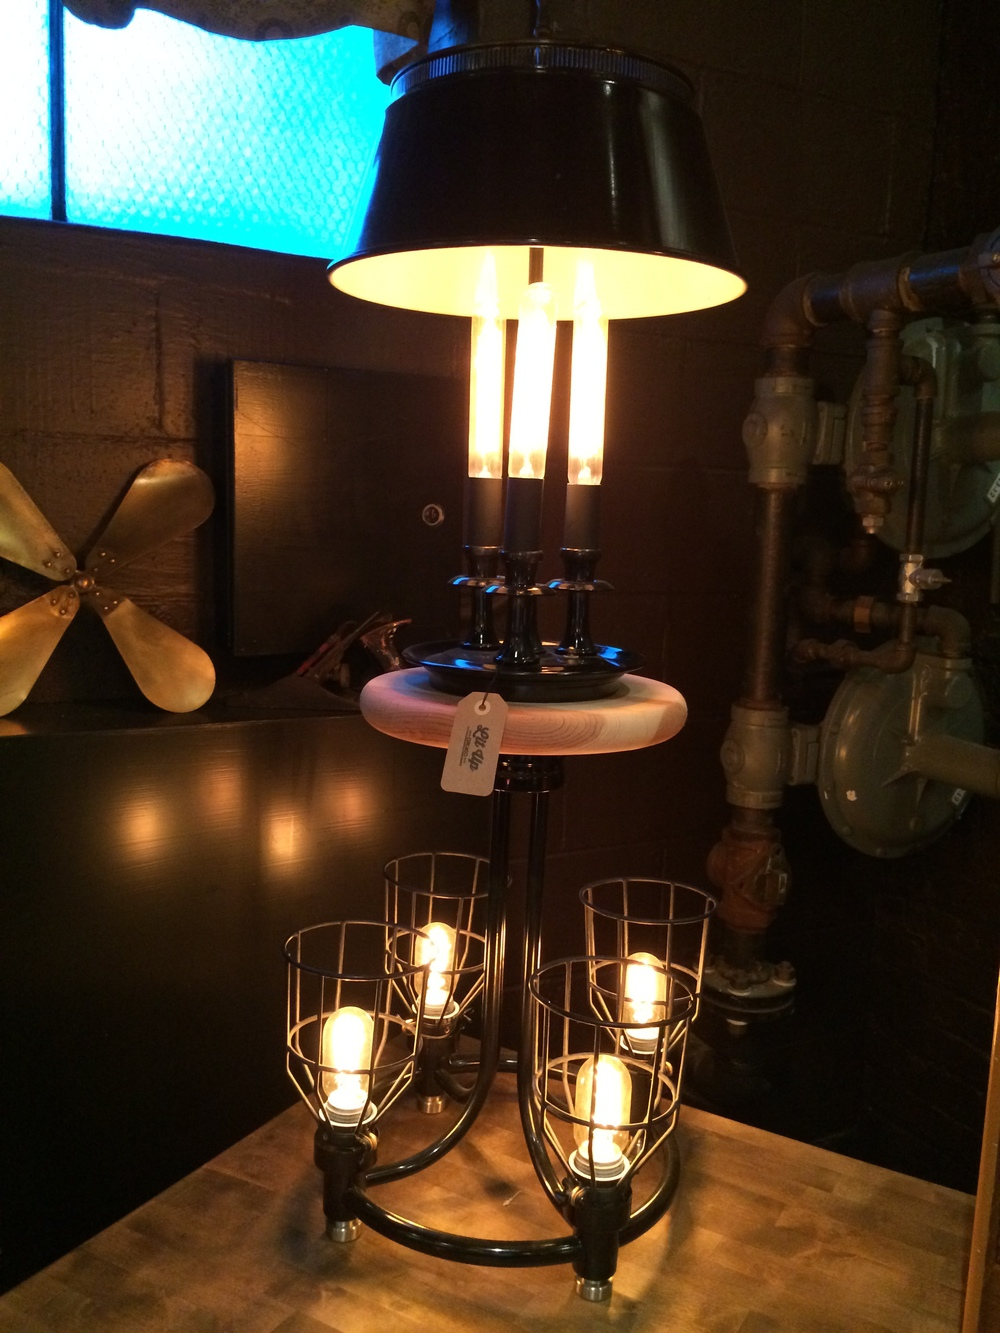 Cage Lamp - $235